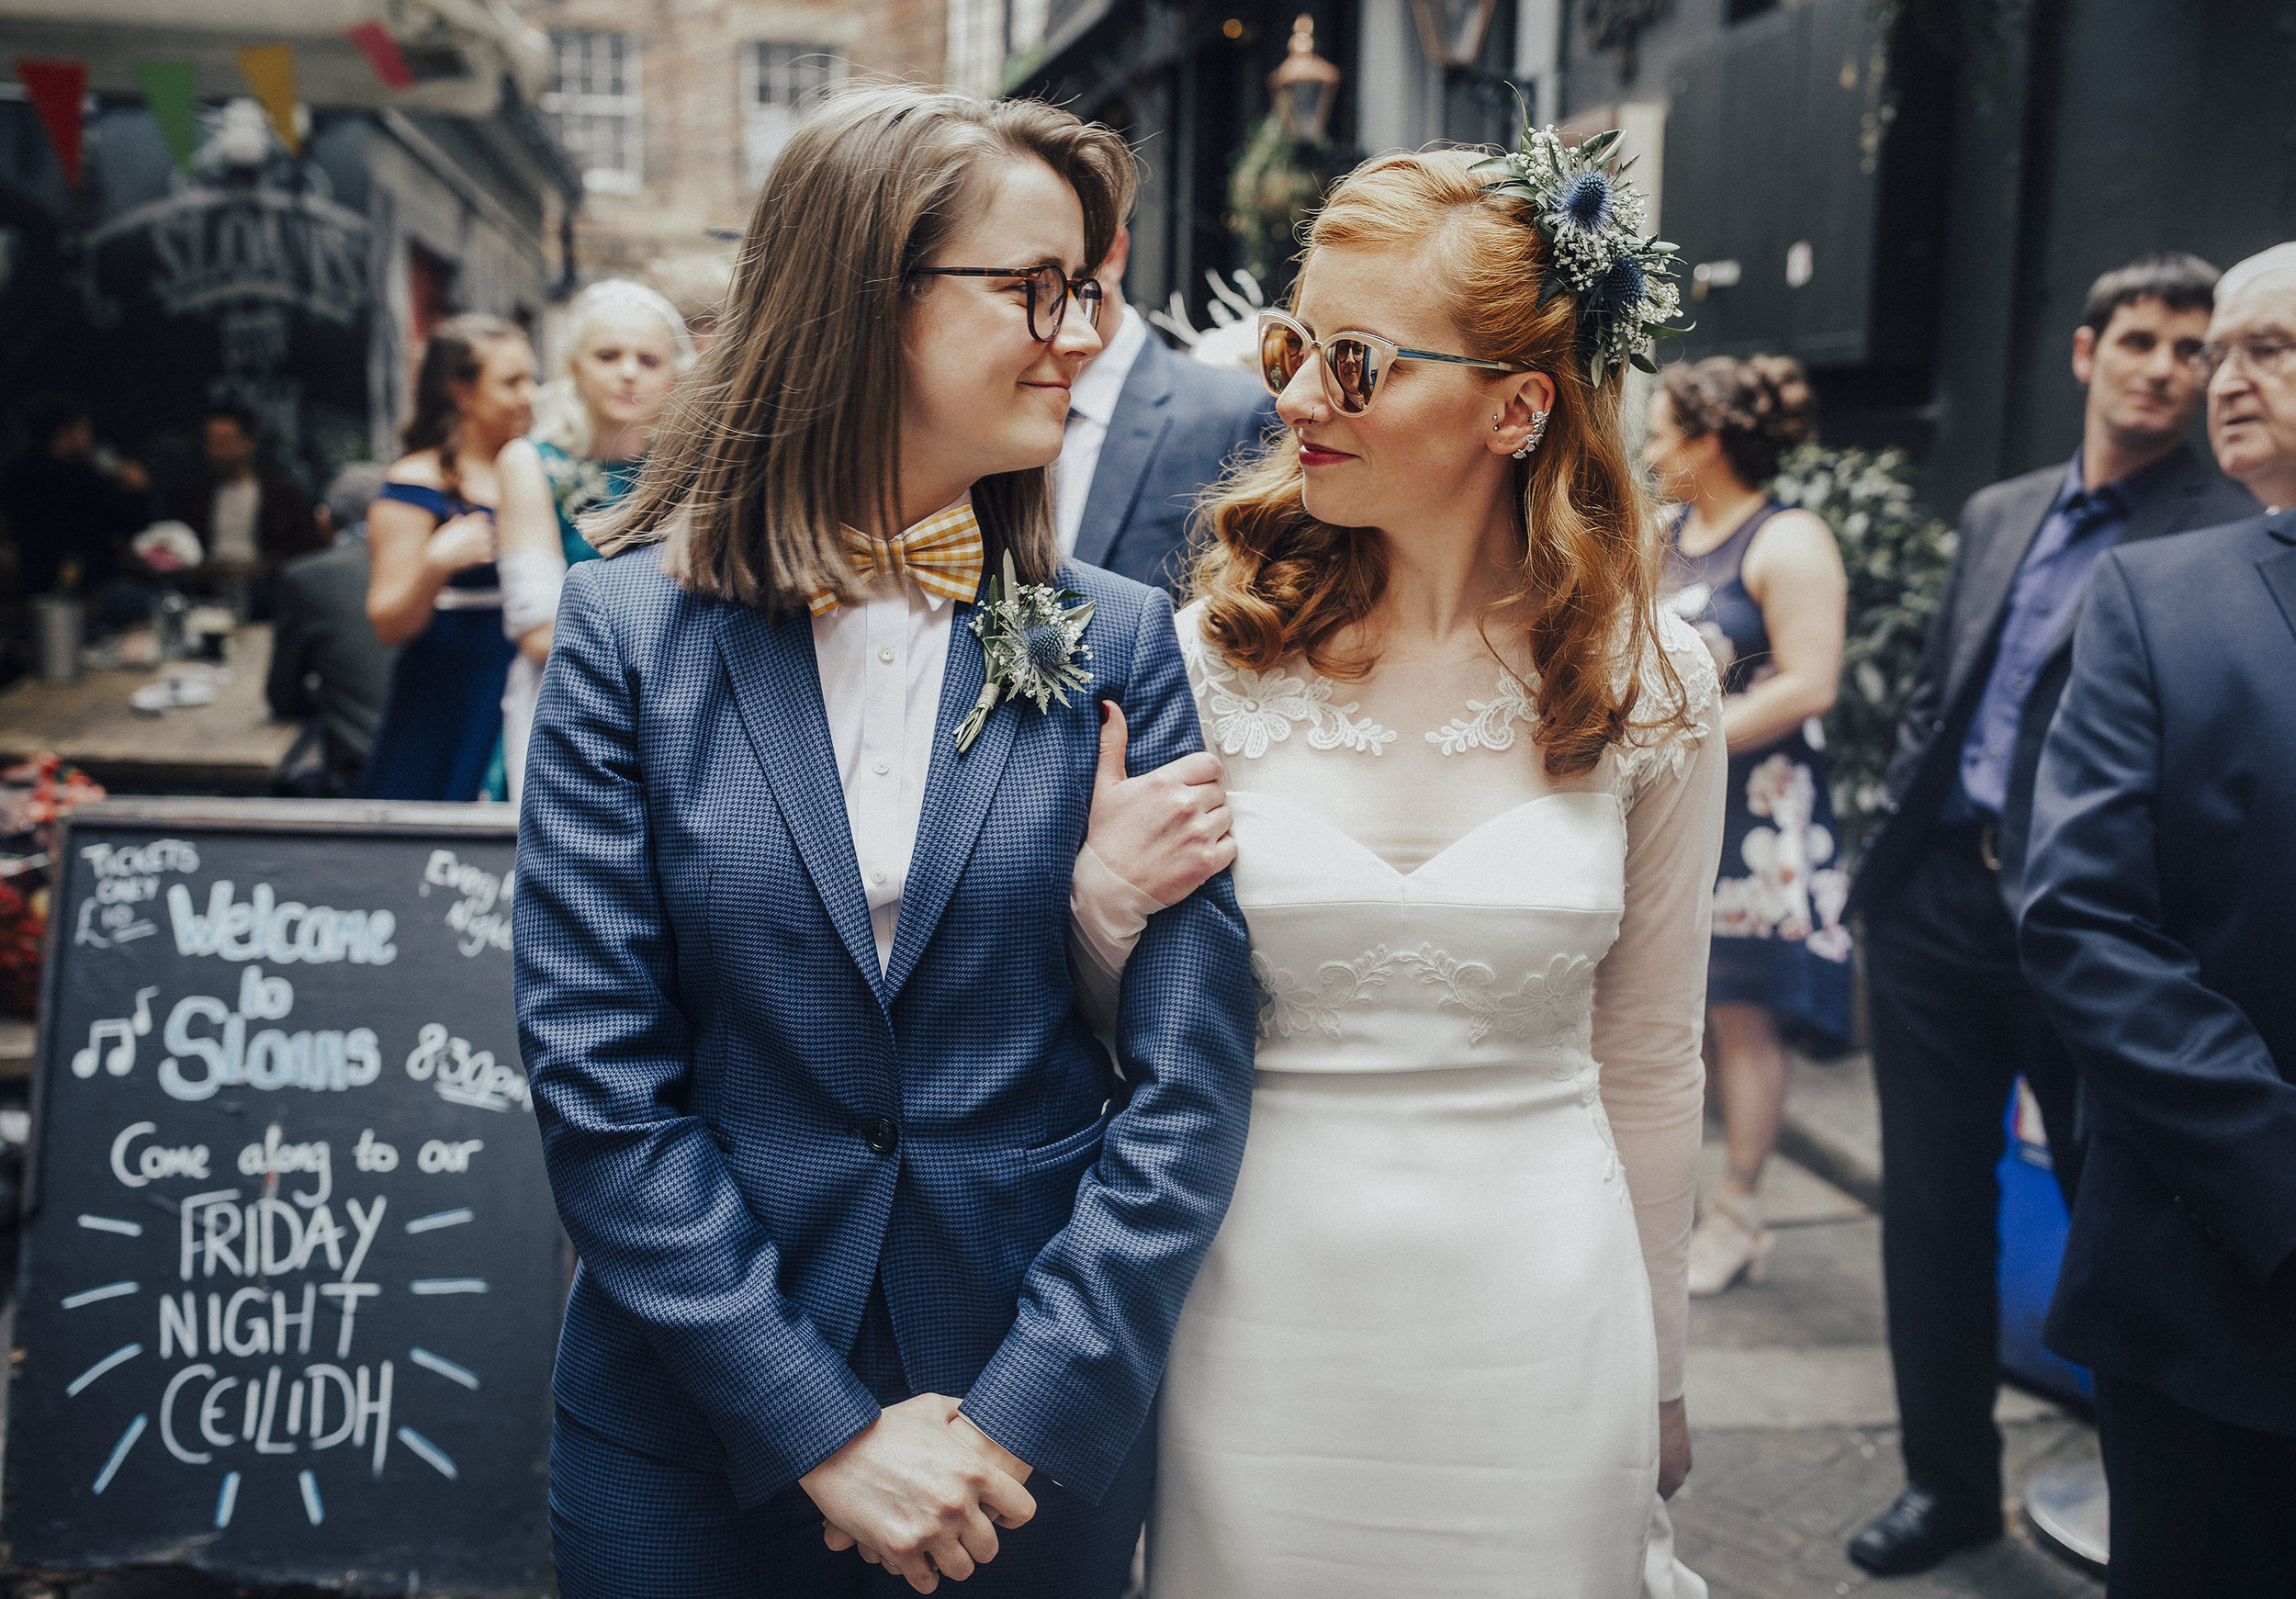 SAME_SEX_WEDDING_PHOTOGRAPHER_SLOANS_GLASGOW_PJ_PHILLIPS_PHOTOGRAPHY_68.jpg